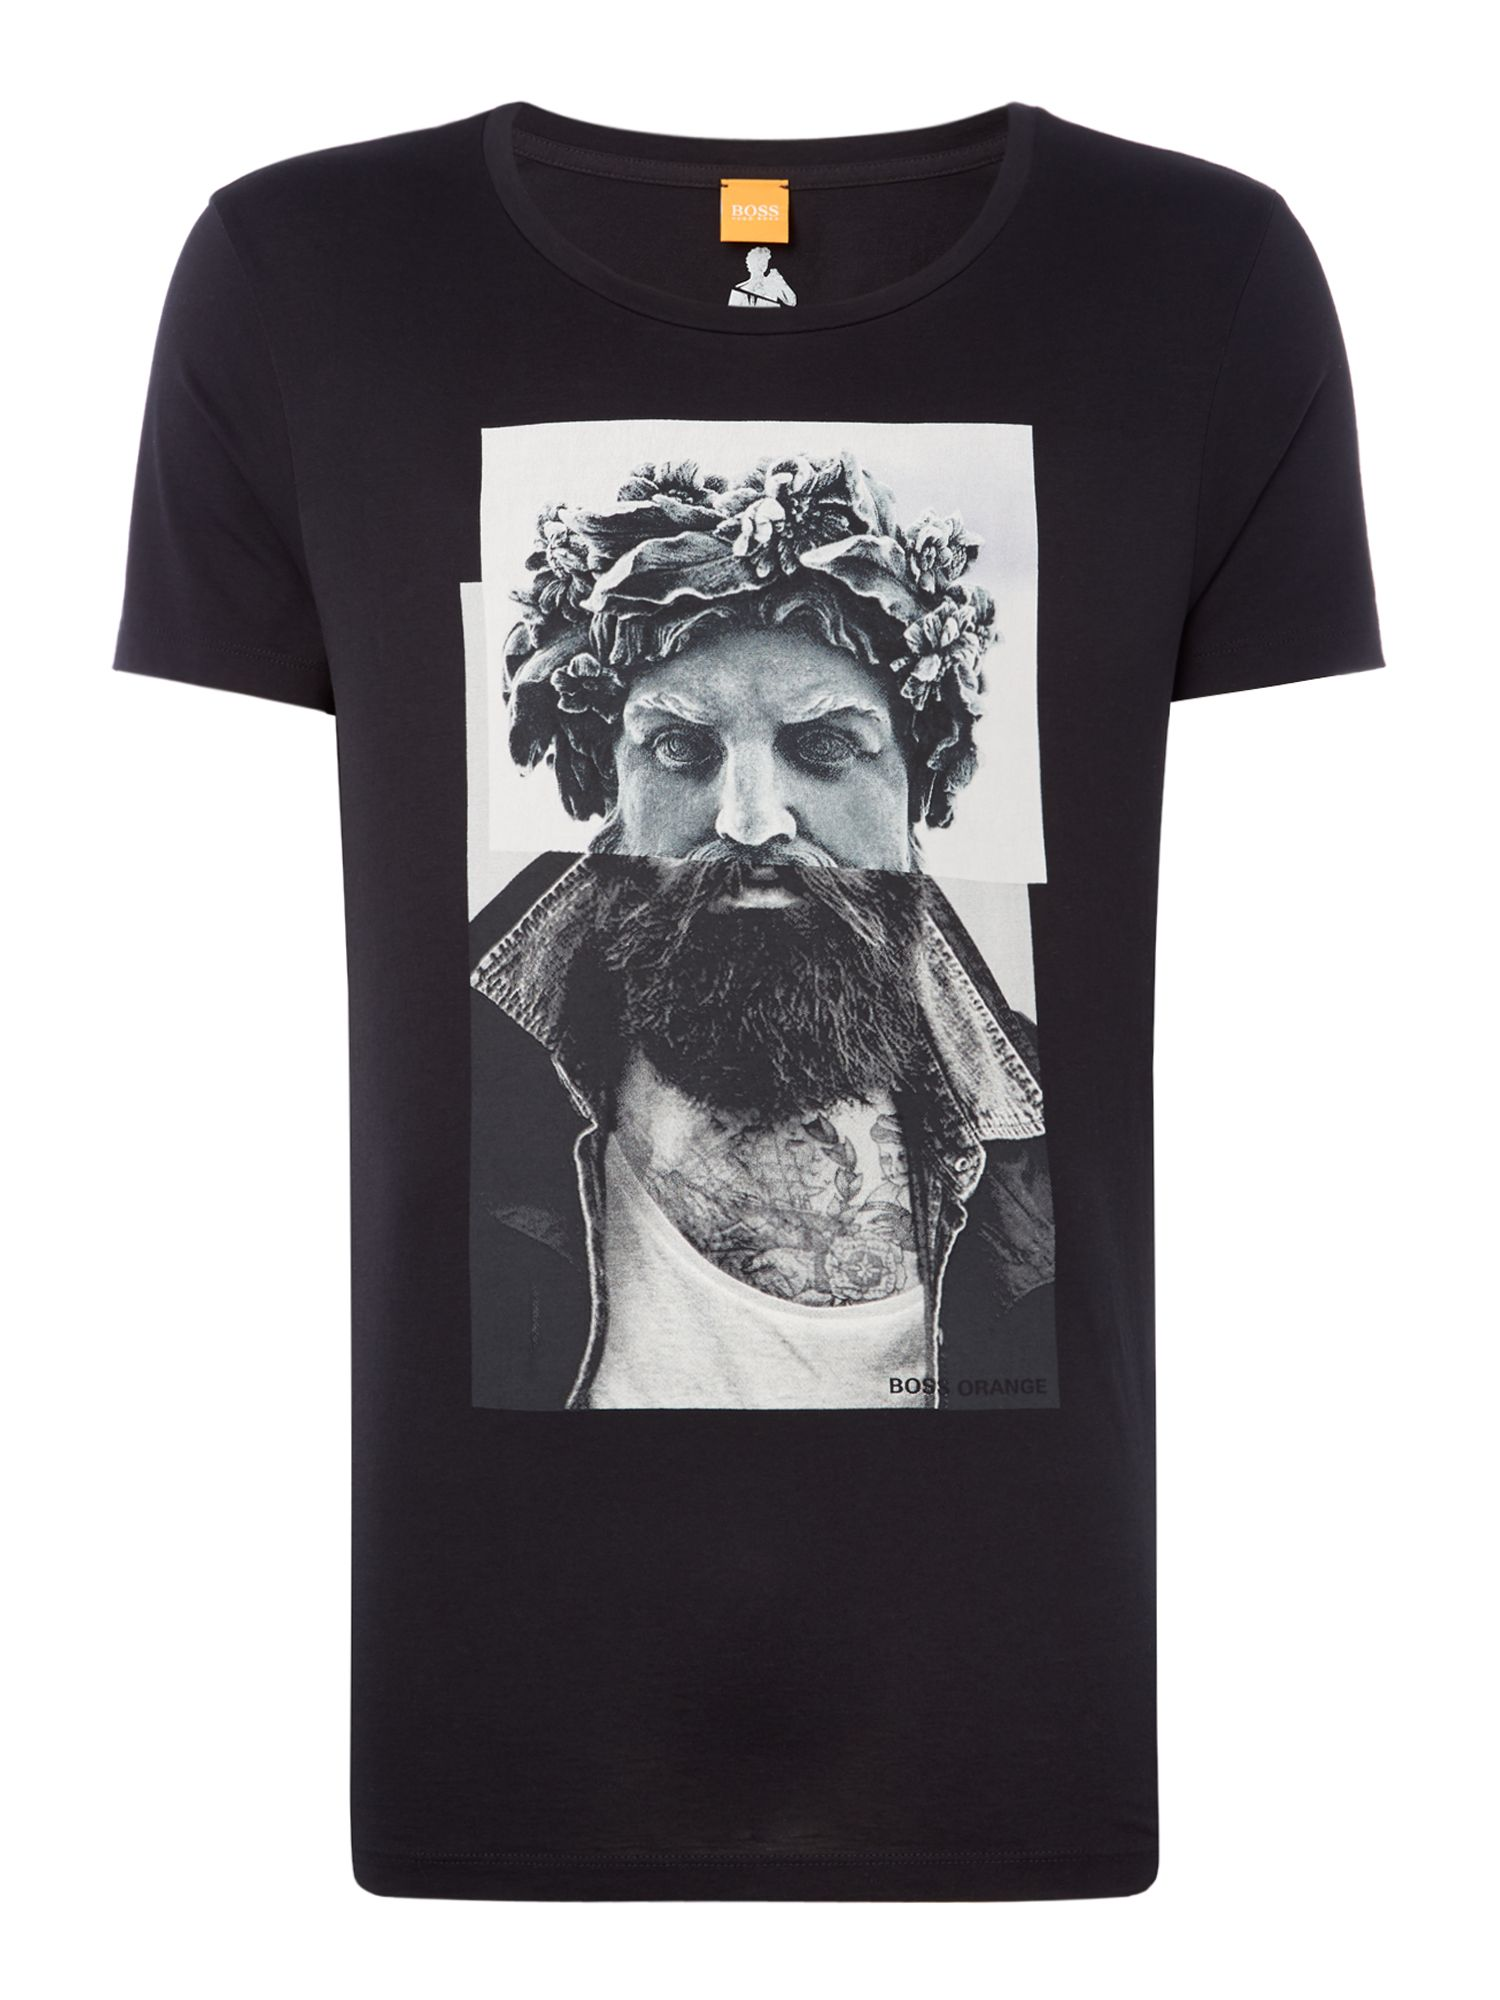 Men's Hugo Boss Taxable 2 bearded statue graphic t-shirt, Black